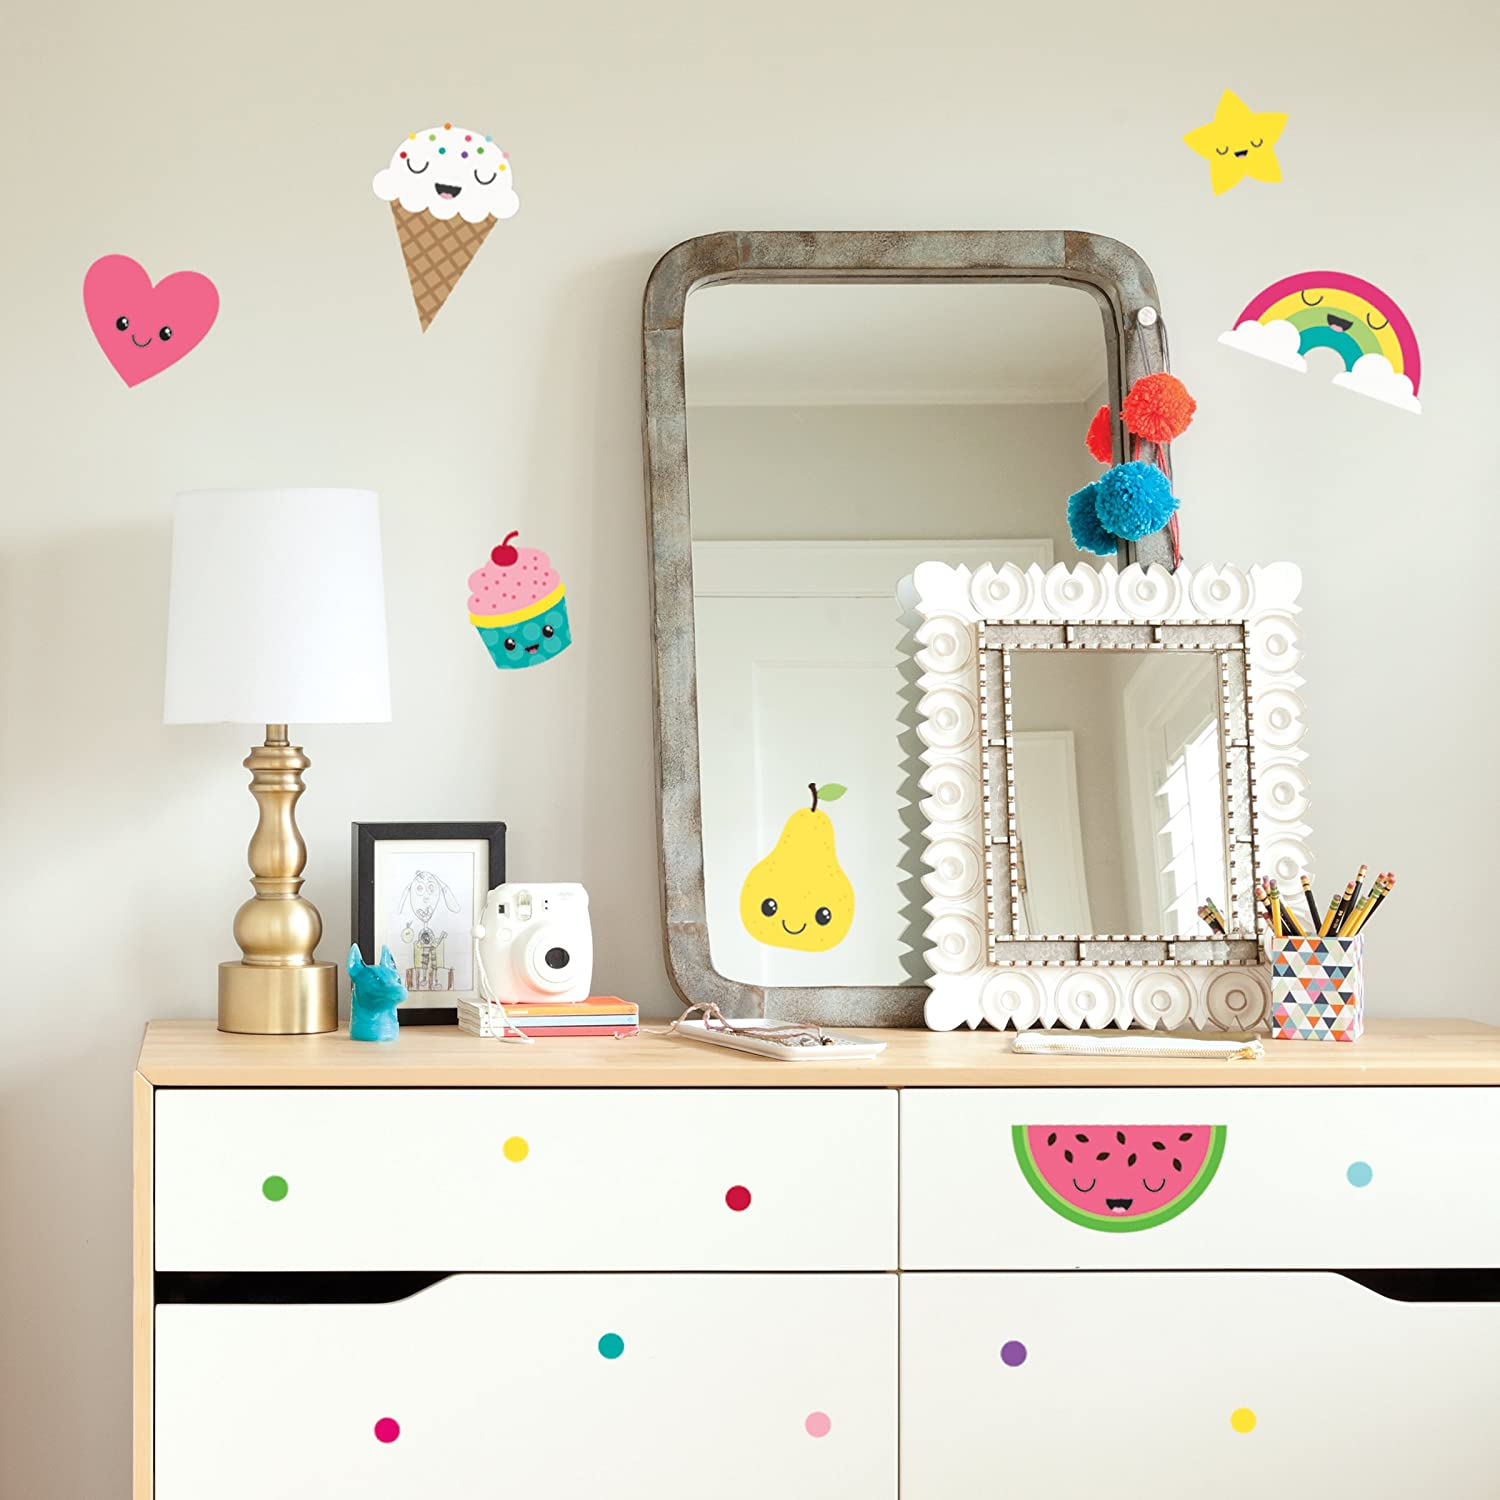 Wall Decals Art Stickers For Cute Room Decor - Easy